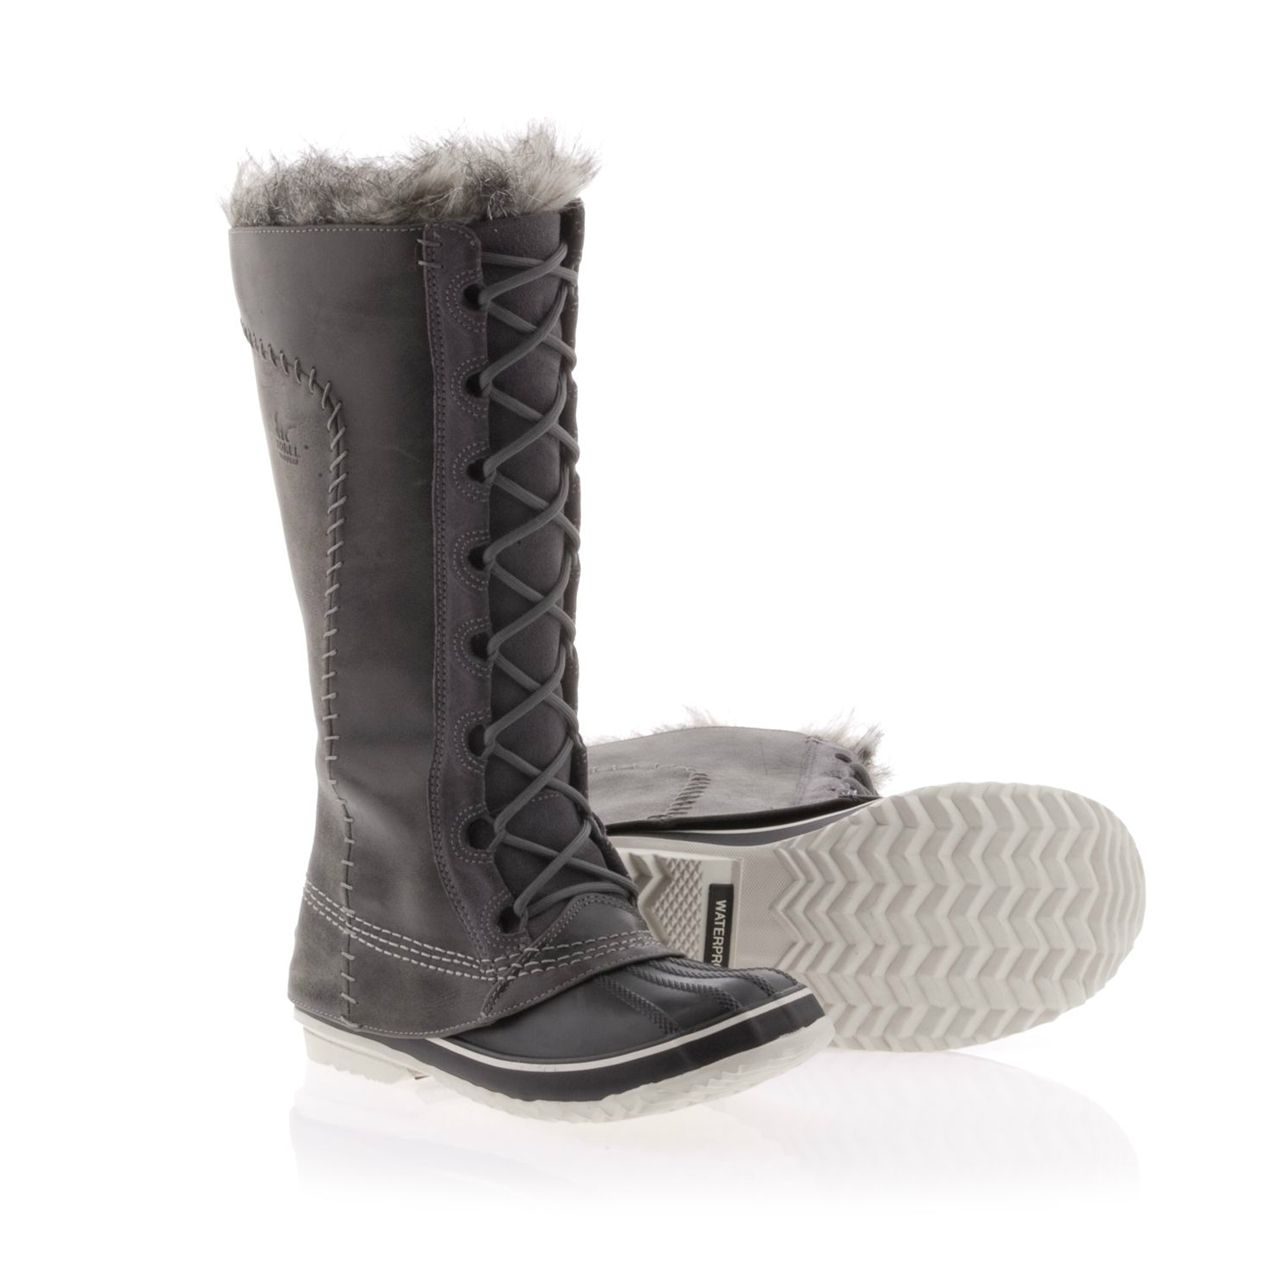 782a6a8602a cate the great sorel boots